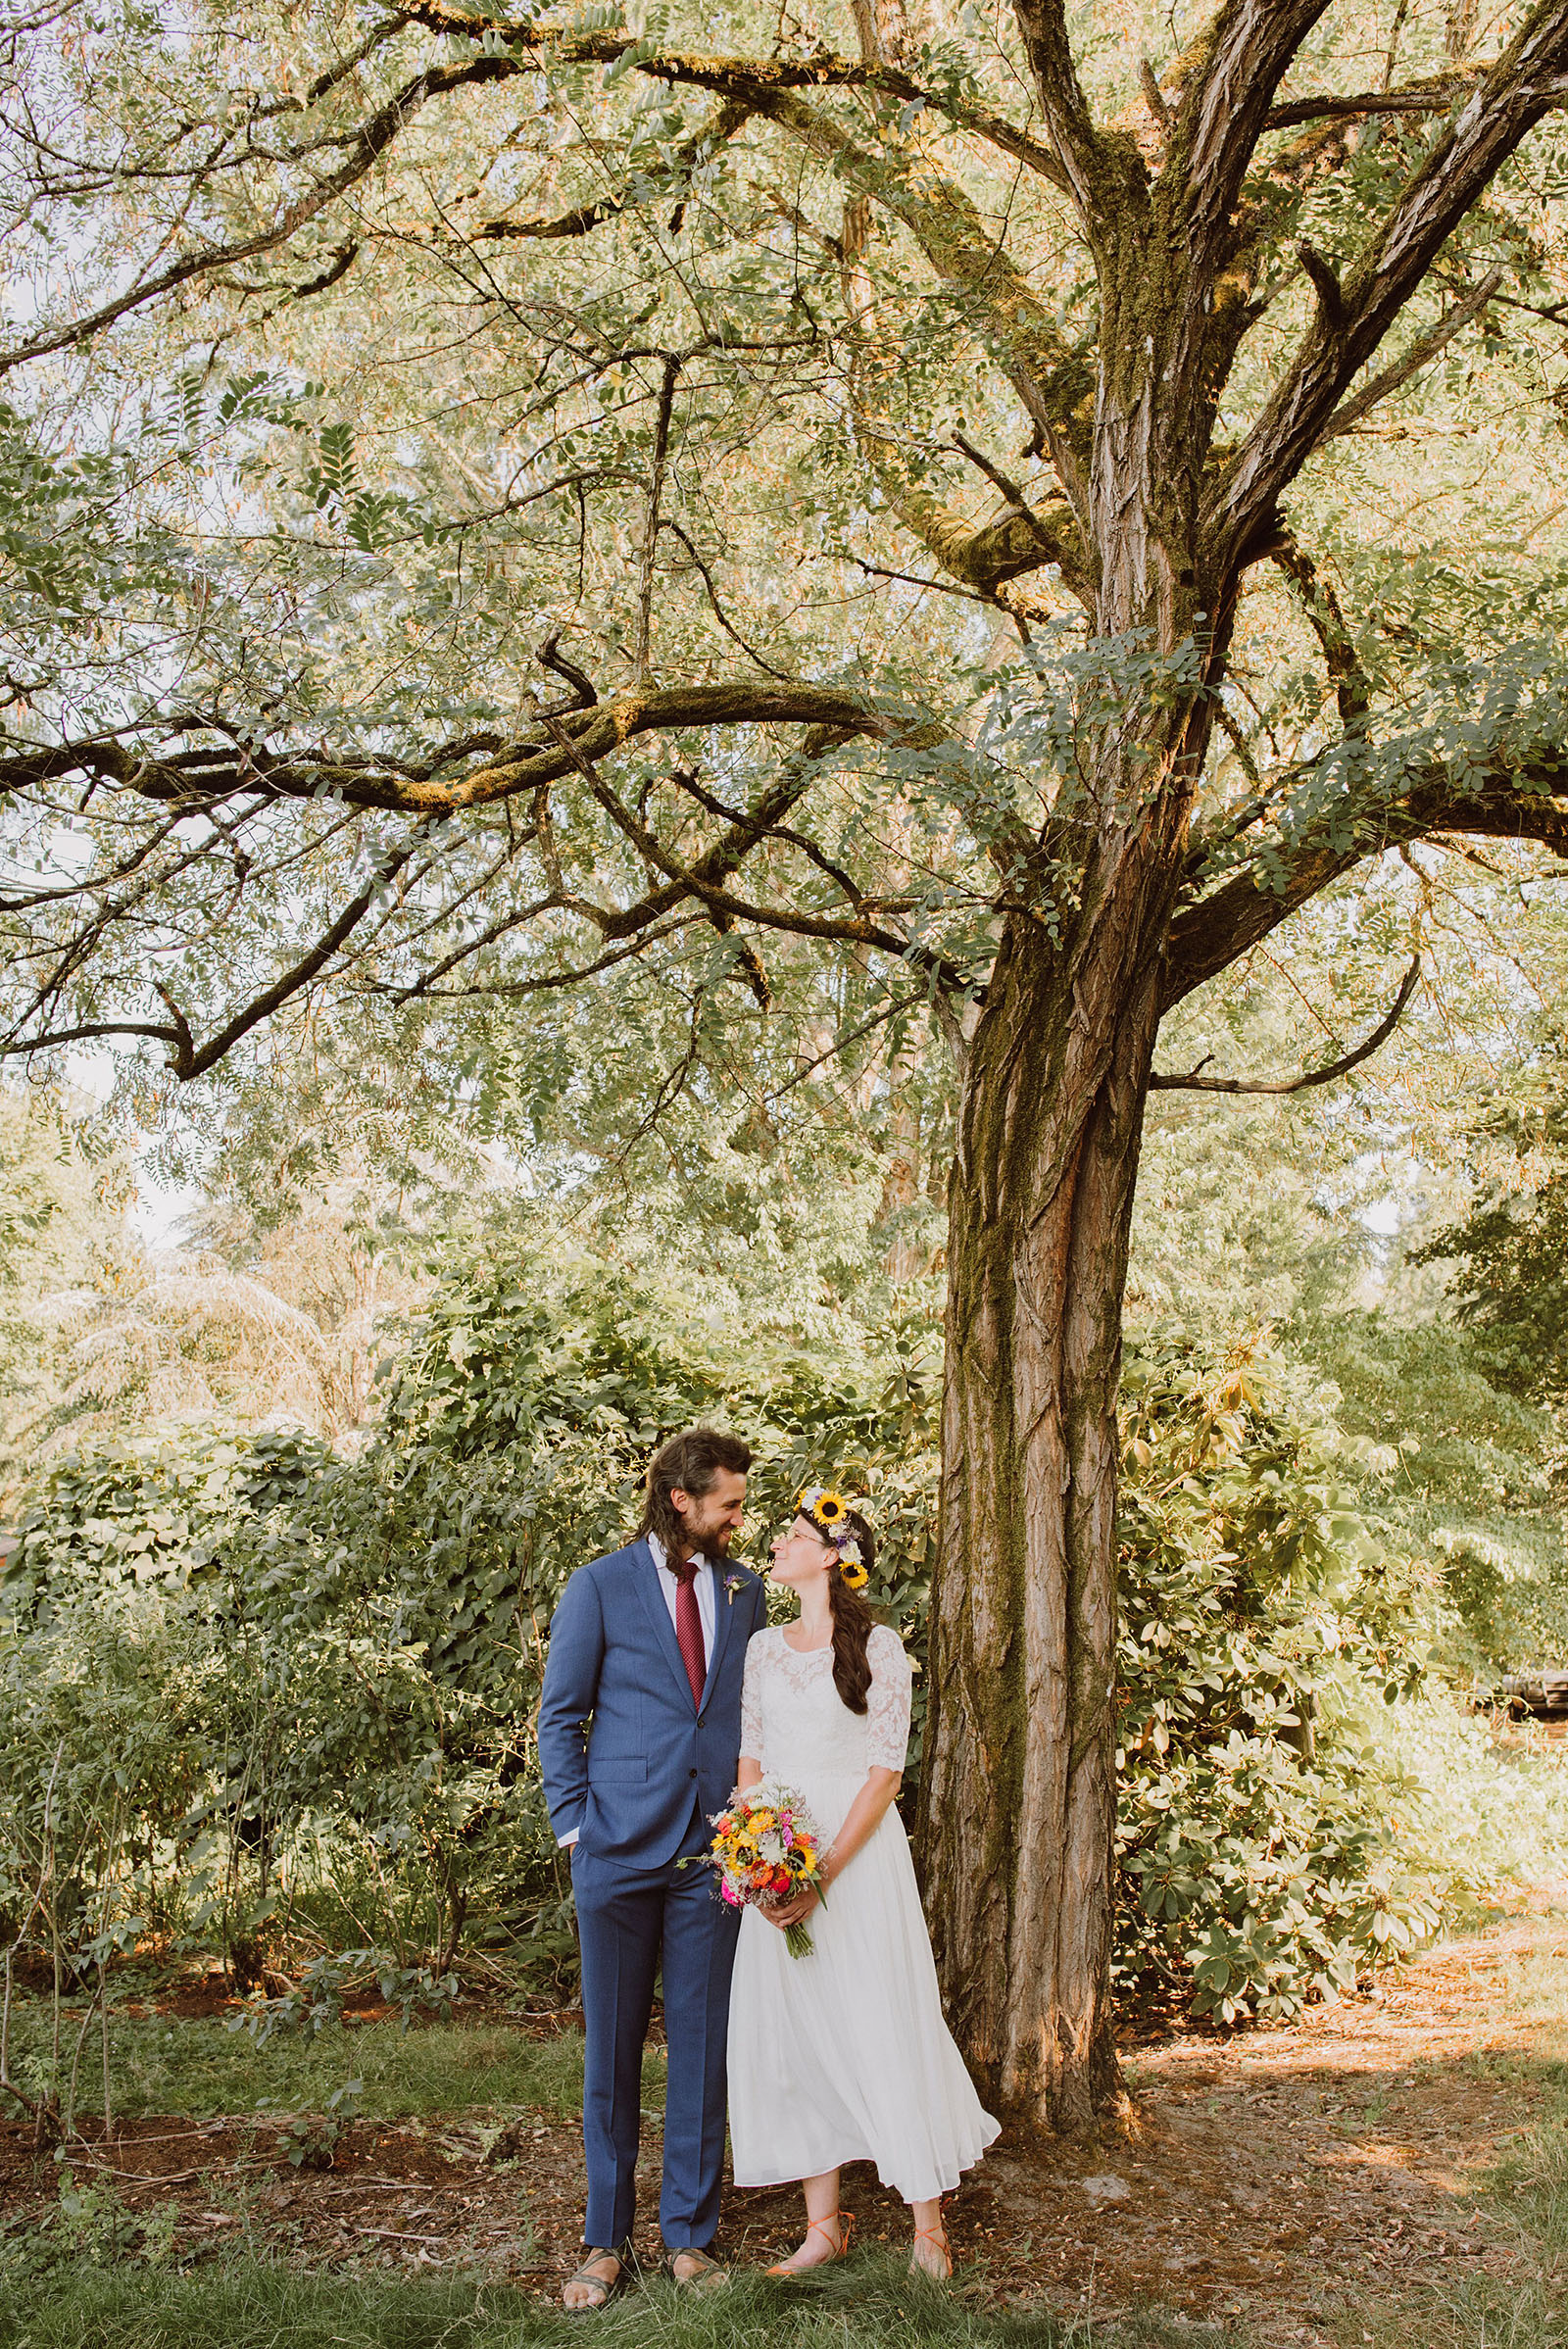 Portrait of the bride and groom under a tree | Sauvie Island Wedding